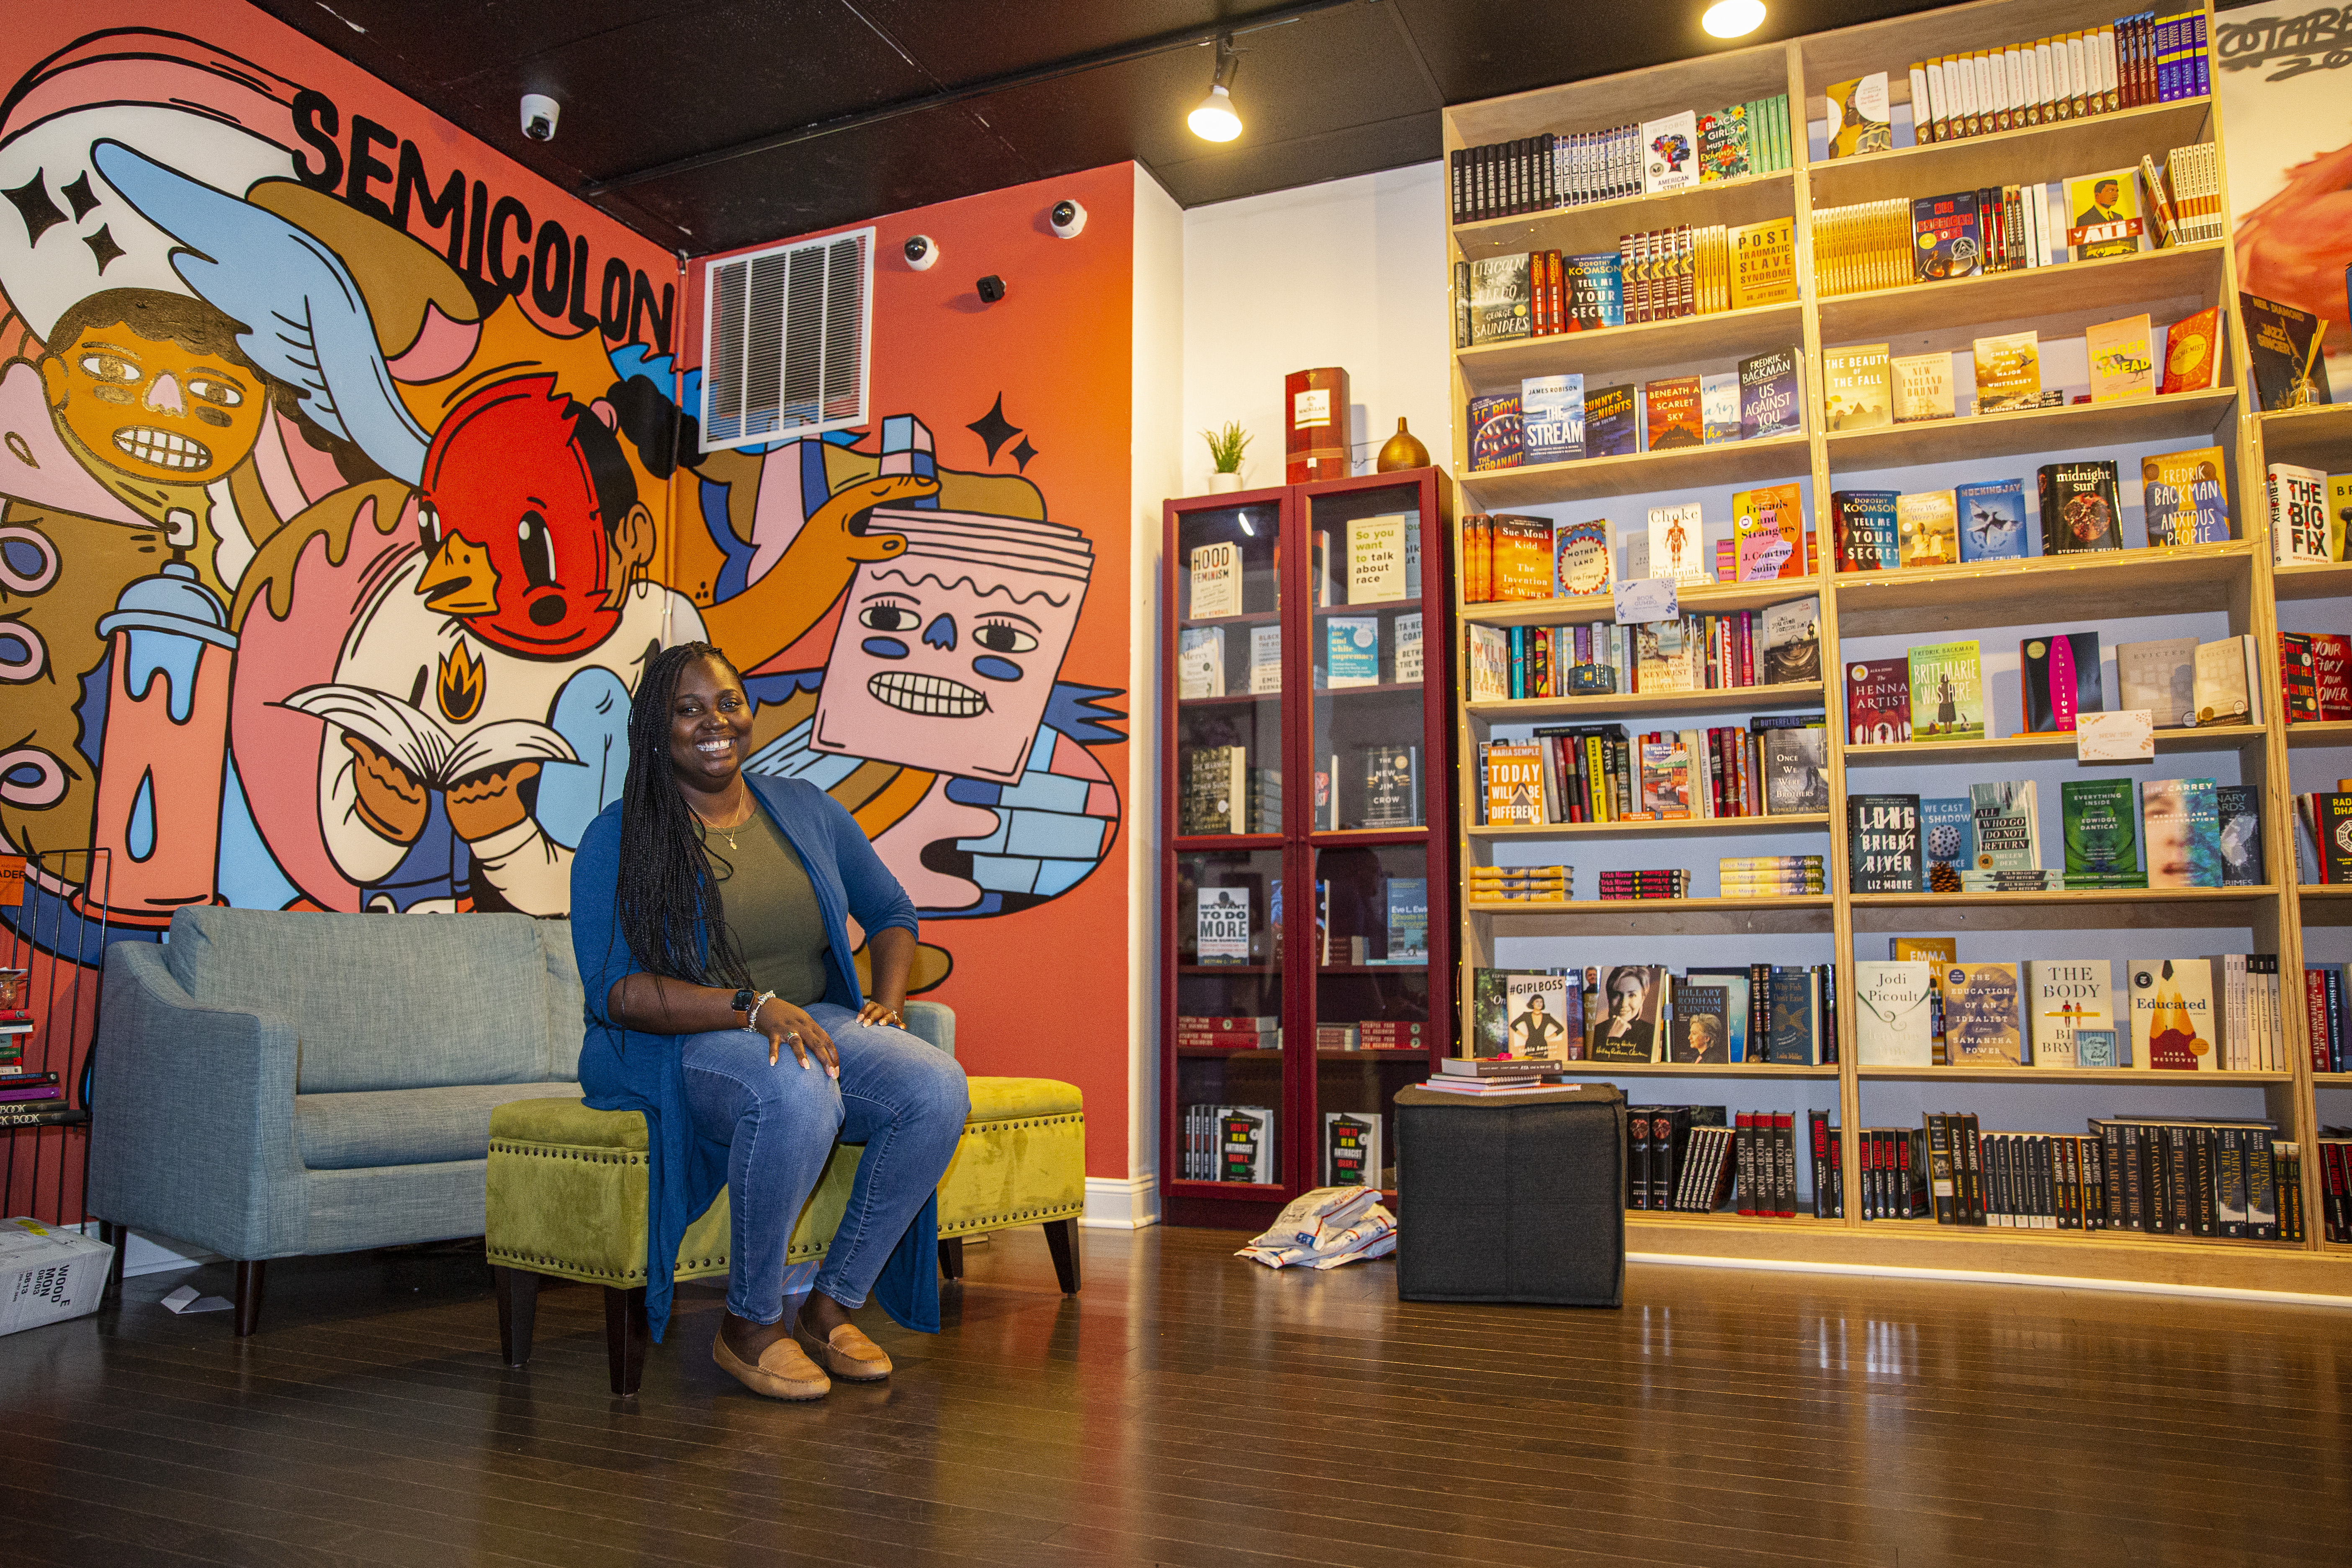 Semicolon Bookstore owner Danielle Mullen poses for a portrait inside her bookstore at 515 N Hasted St in Fulton River District Monday, Sept. 21, 2020. | Anthony Vazquez/Sun-Times